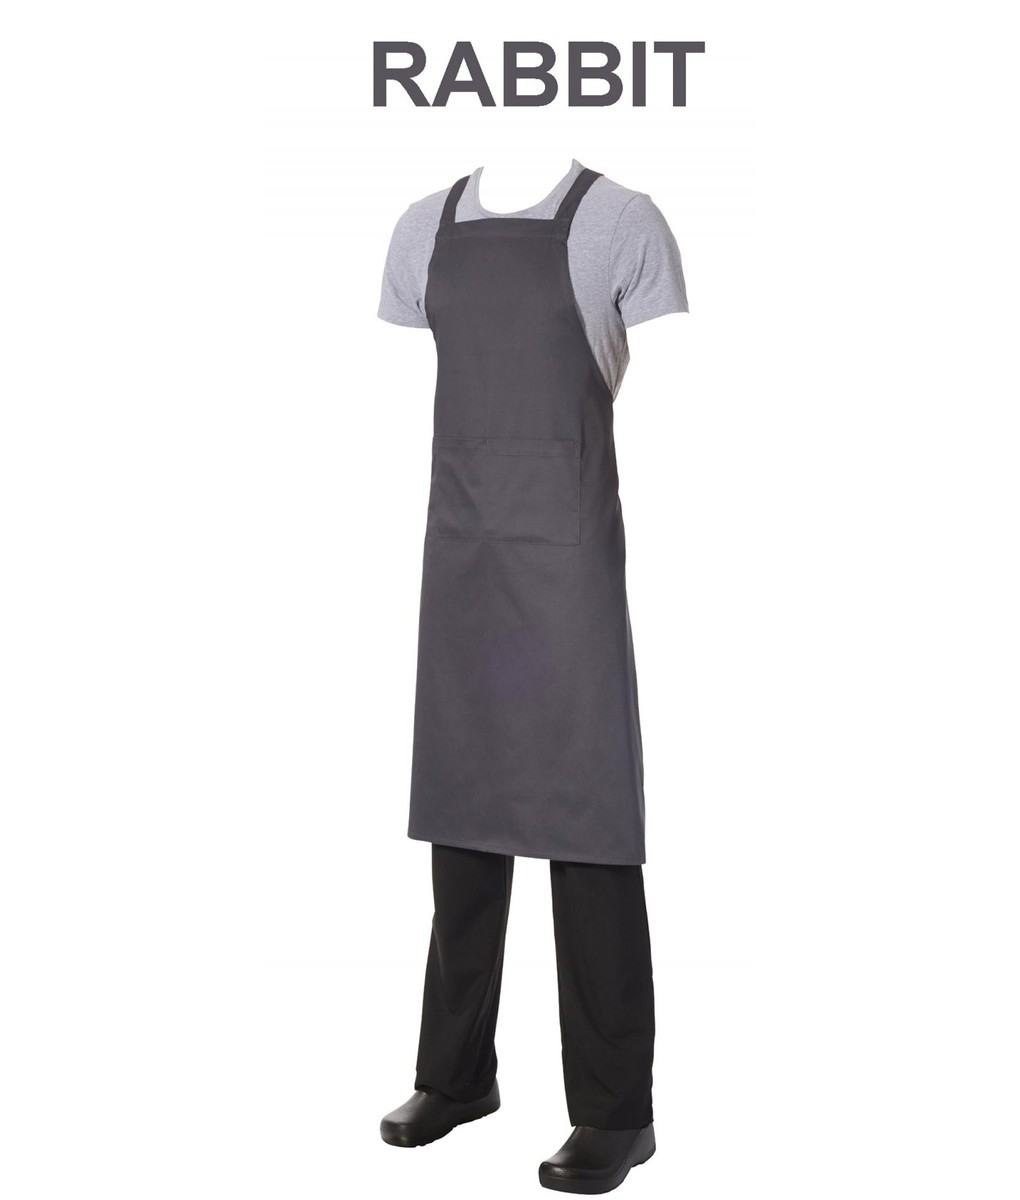 Crossback Apron by Club Chef Aprons 8